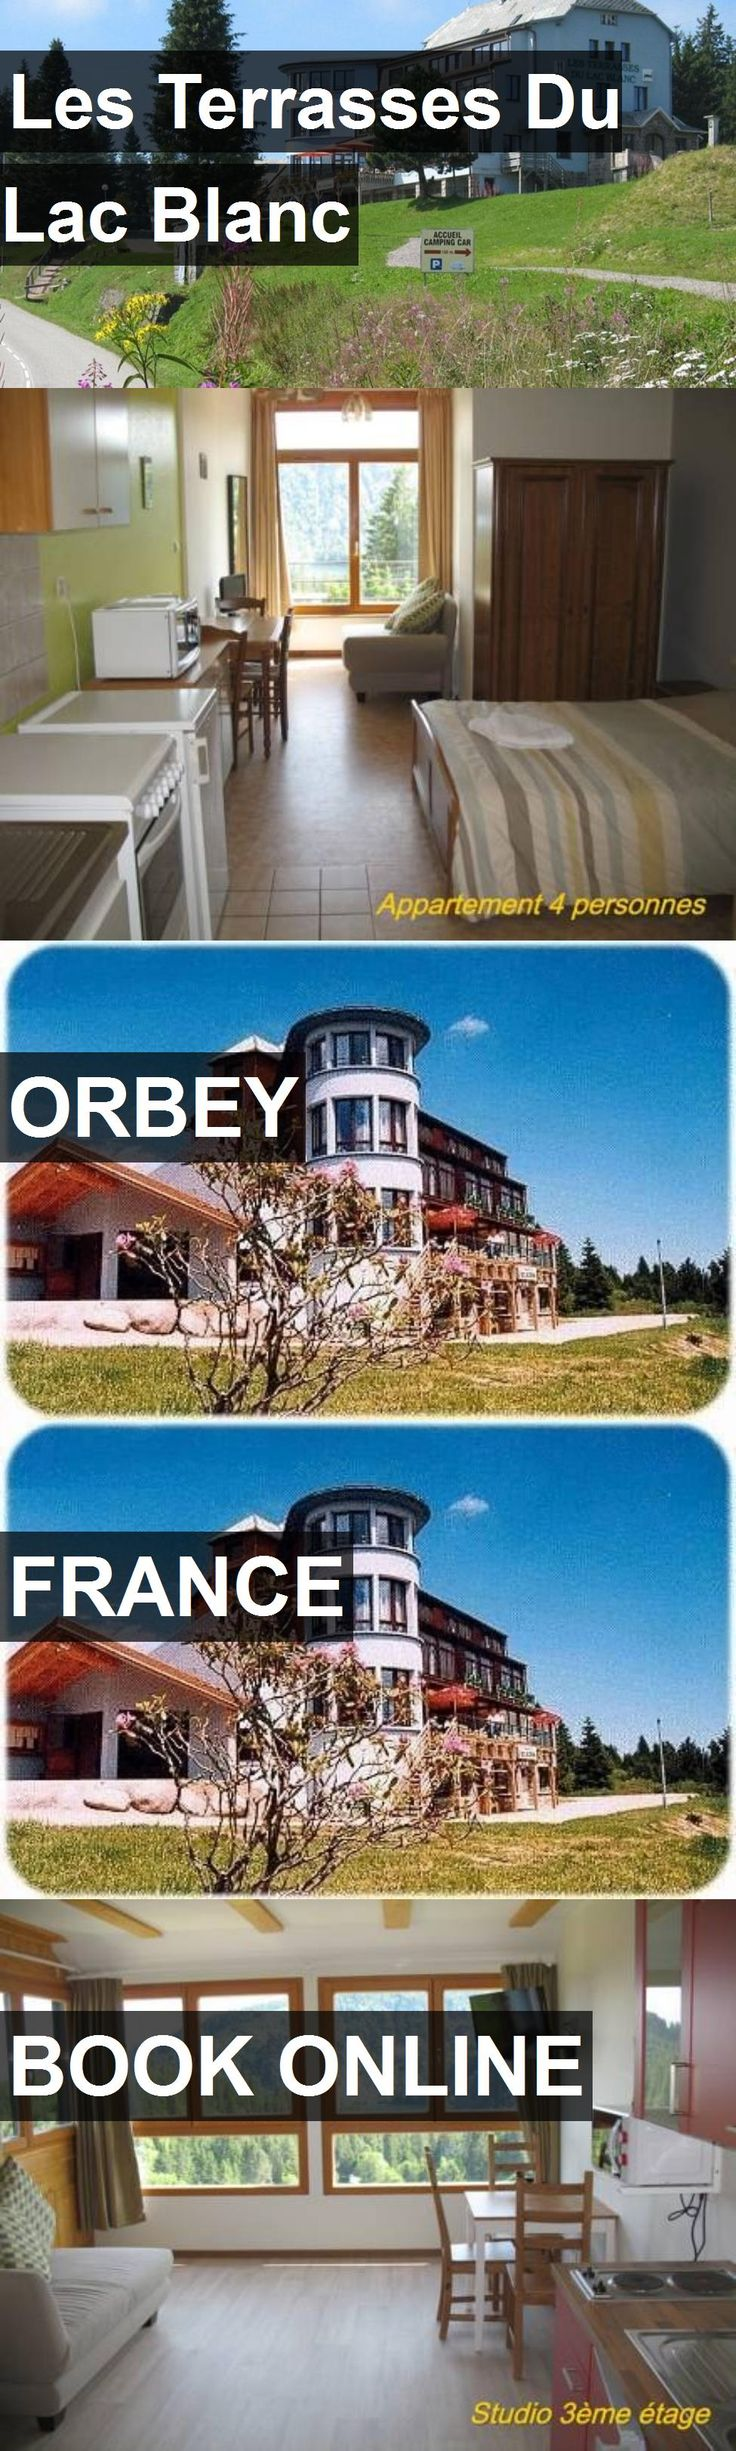 Hotel Les Terrasses Du Lac Blanc in Orbey, France. For more information, photos, reviews and best prices please follow the link. #France #Orbey #LesTerrassesDuLacBlanc #hotel #travel #vacation